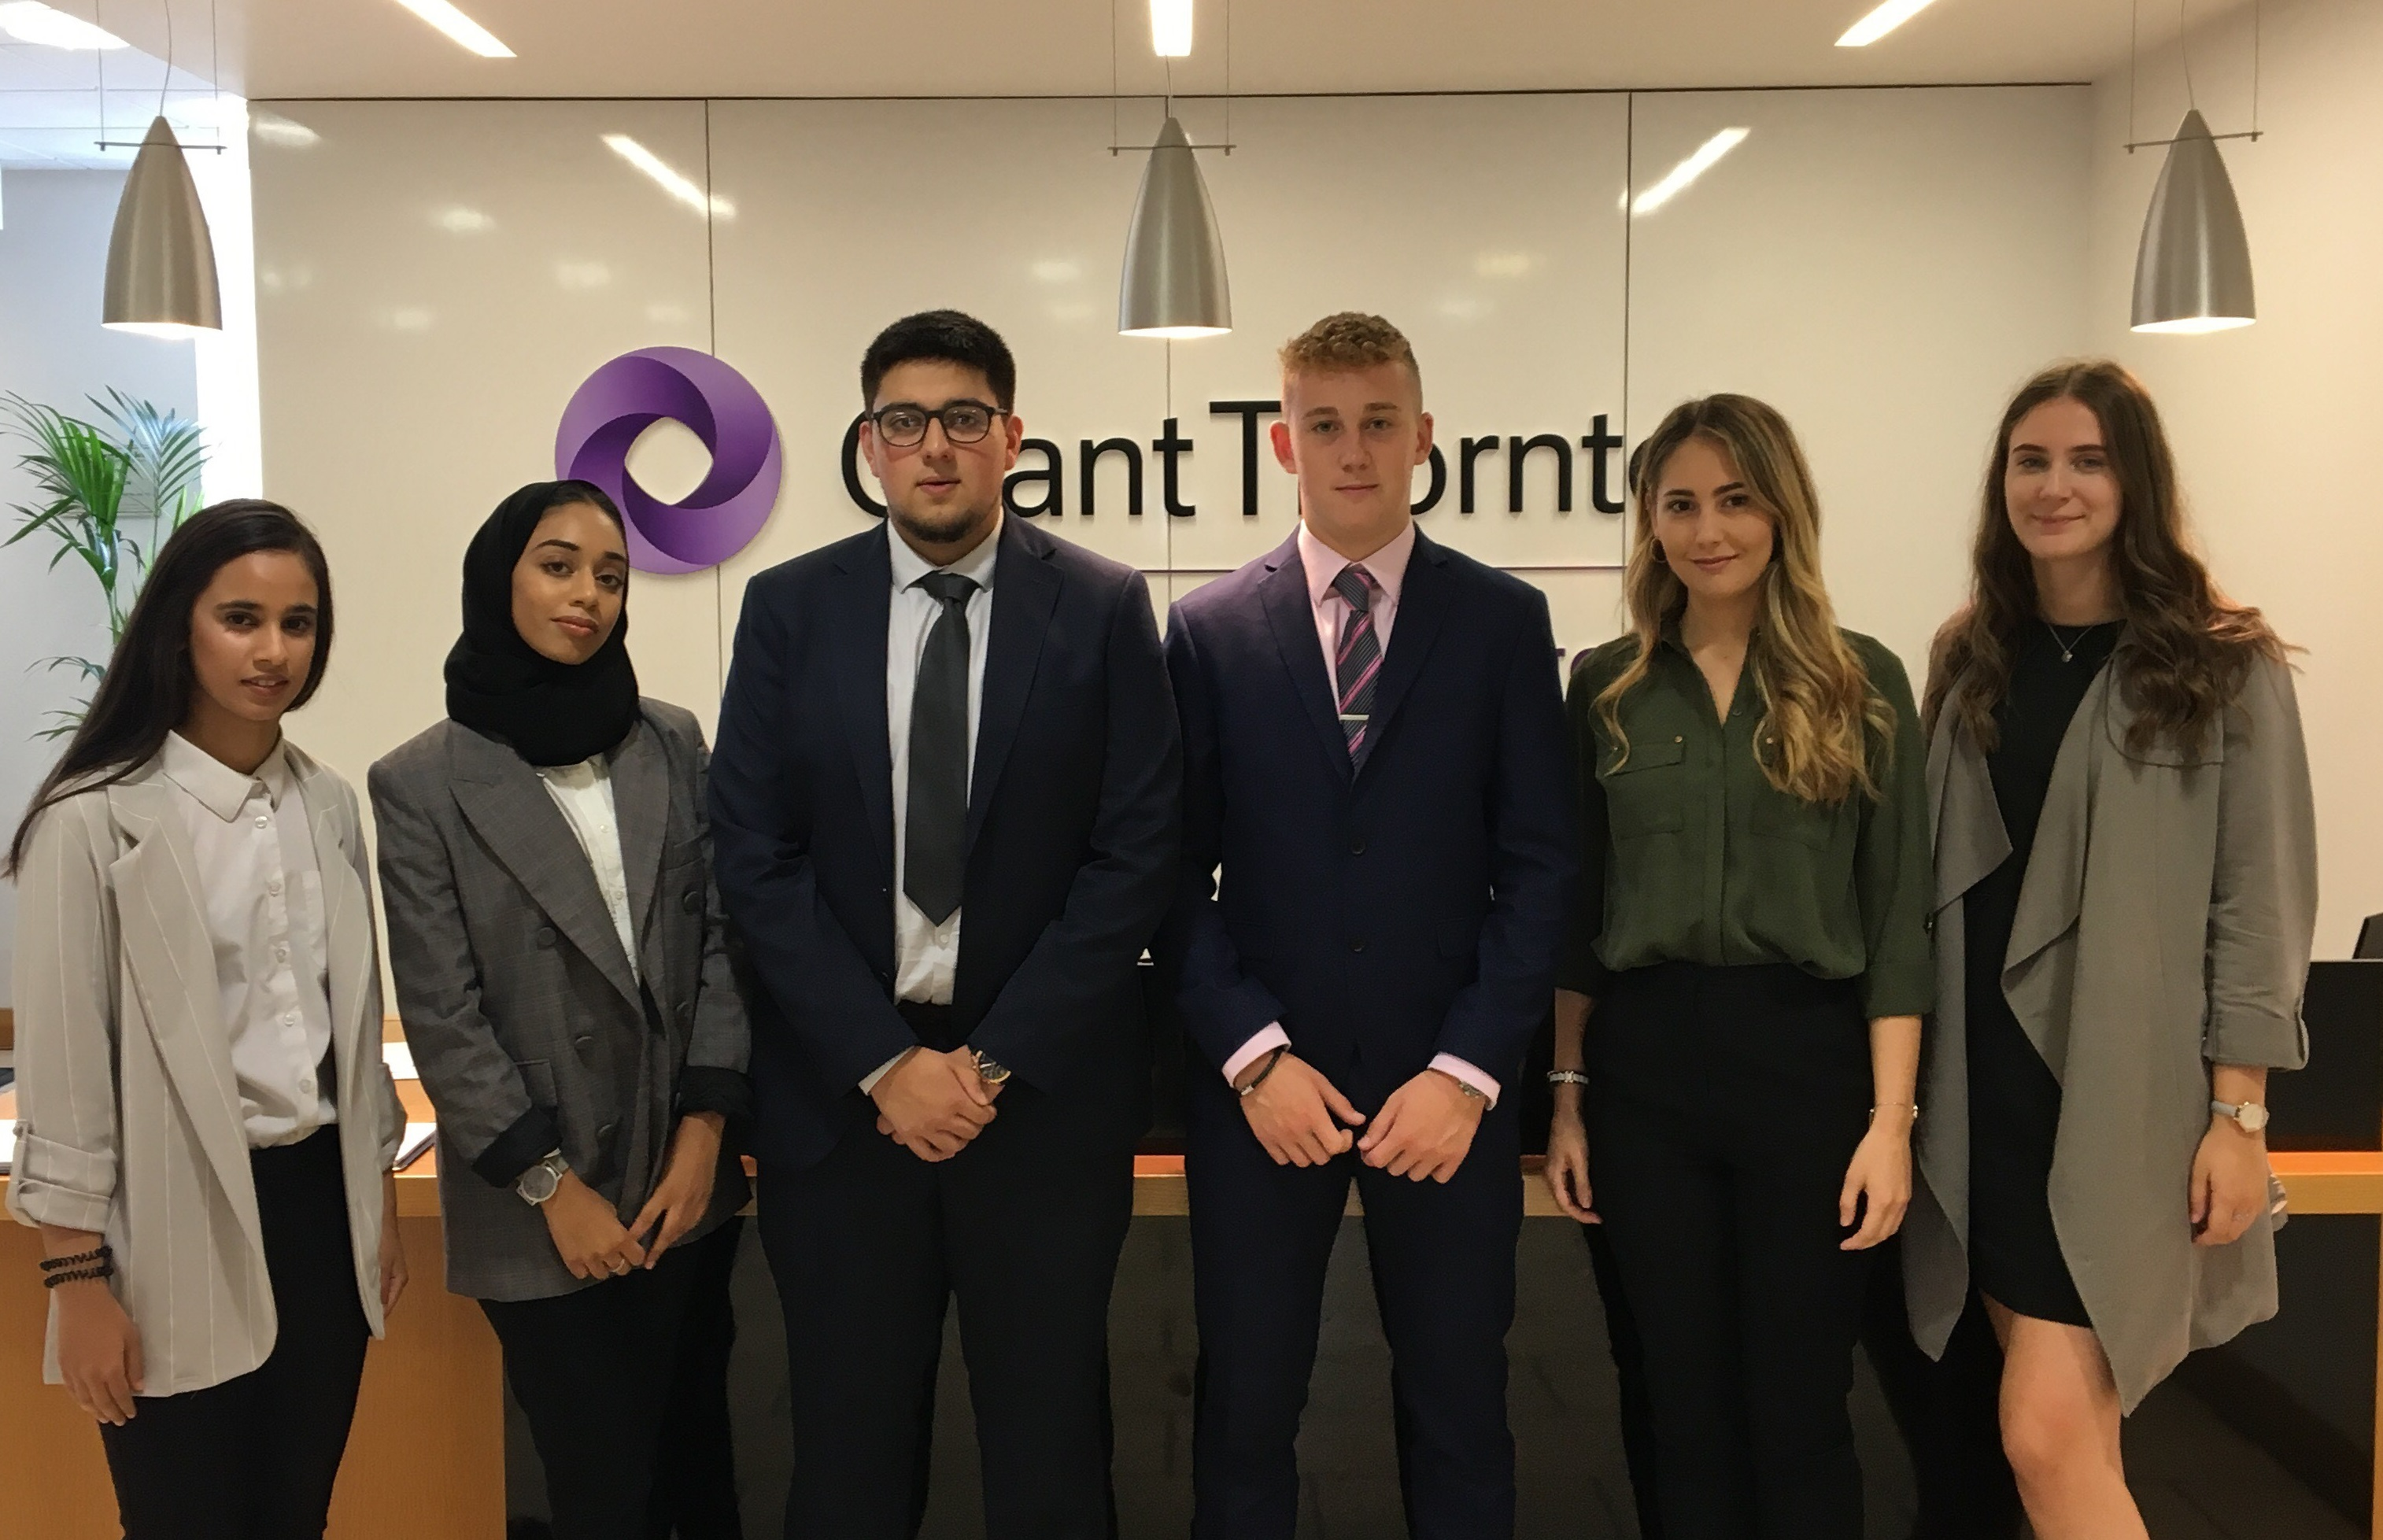 Grant Thornton welcomes its next generation of talent